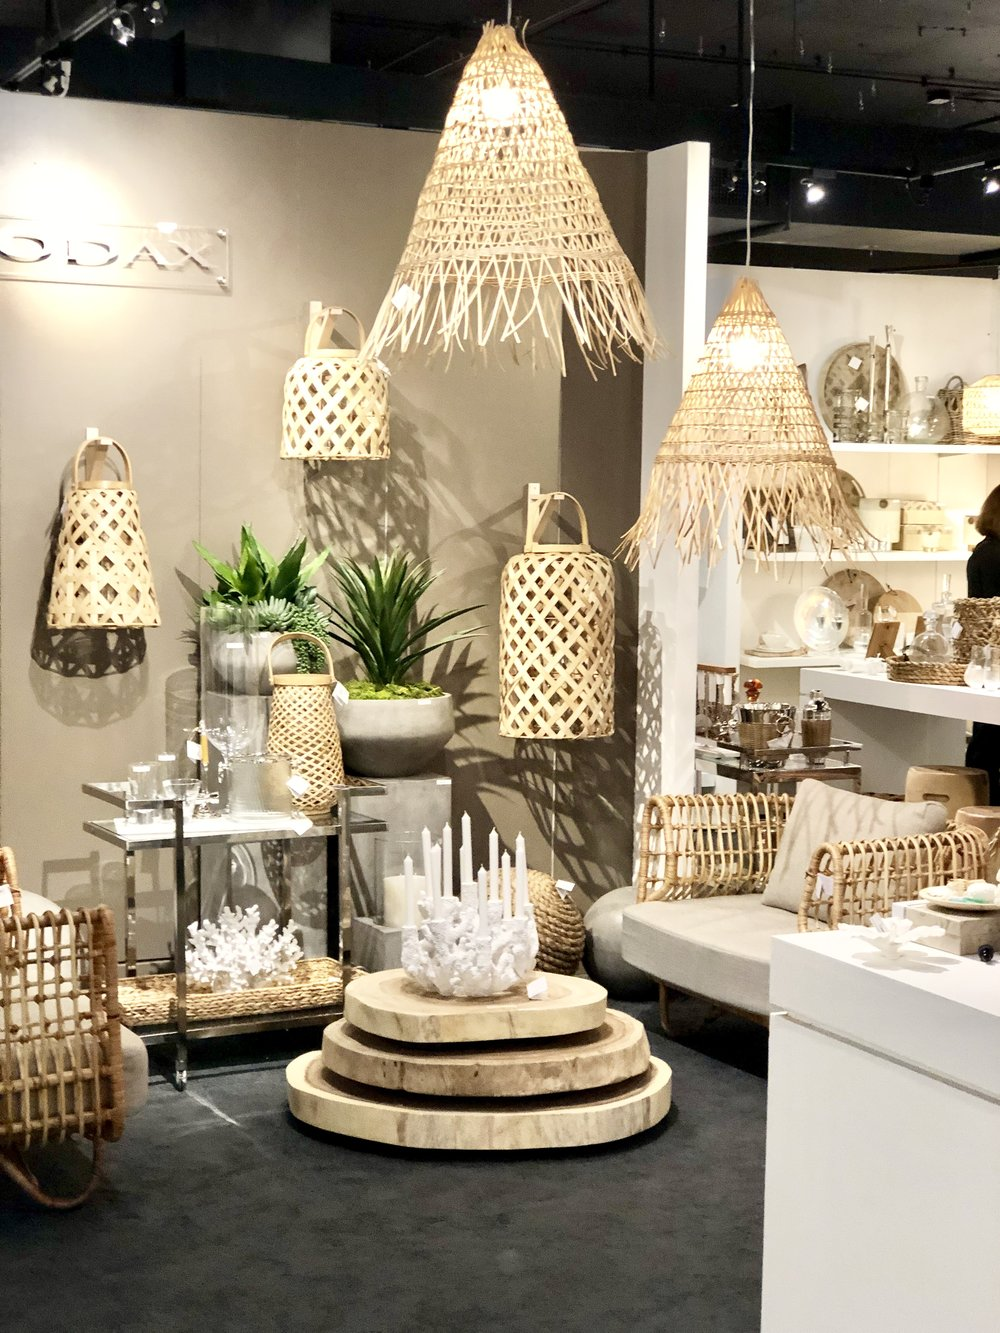 Rattan, wicker, natural elements on all types of lighting!